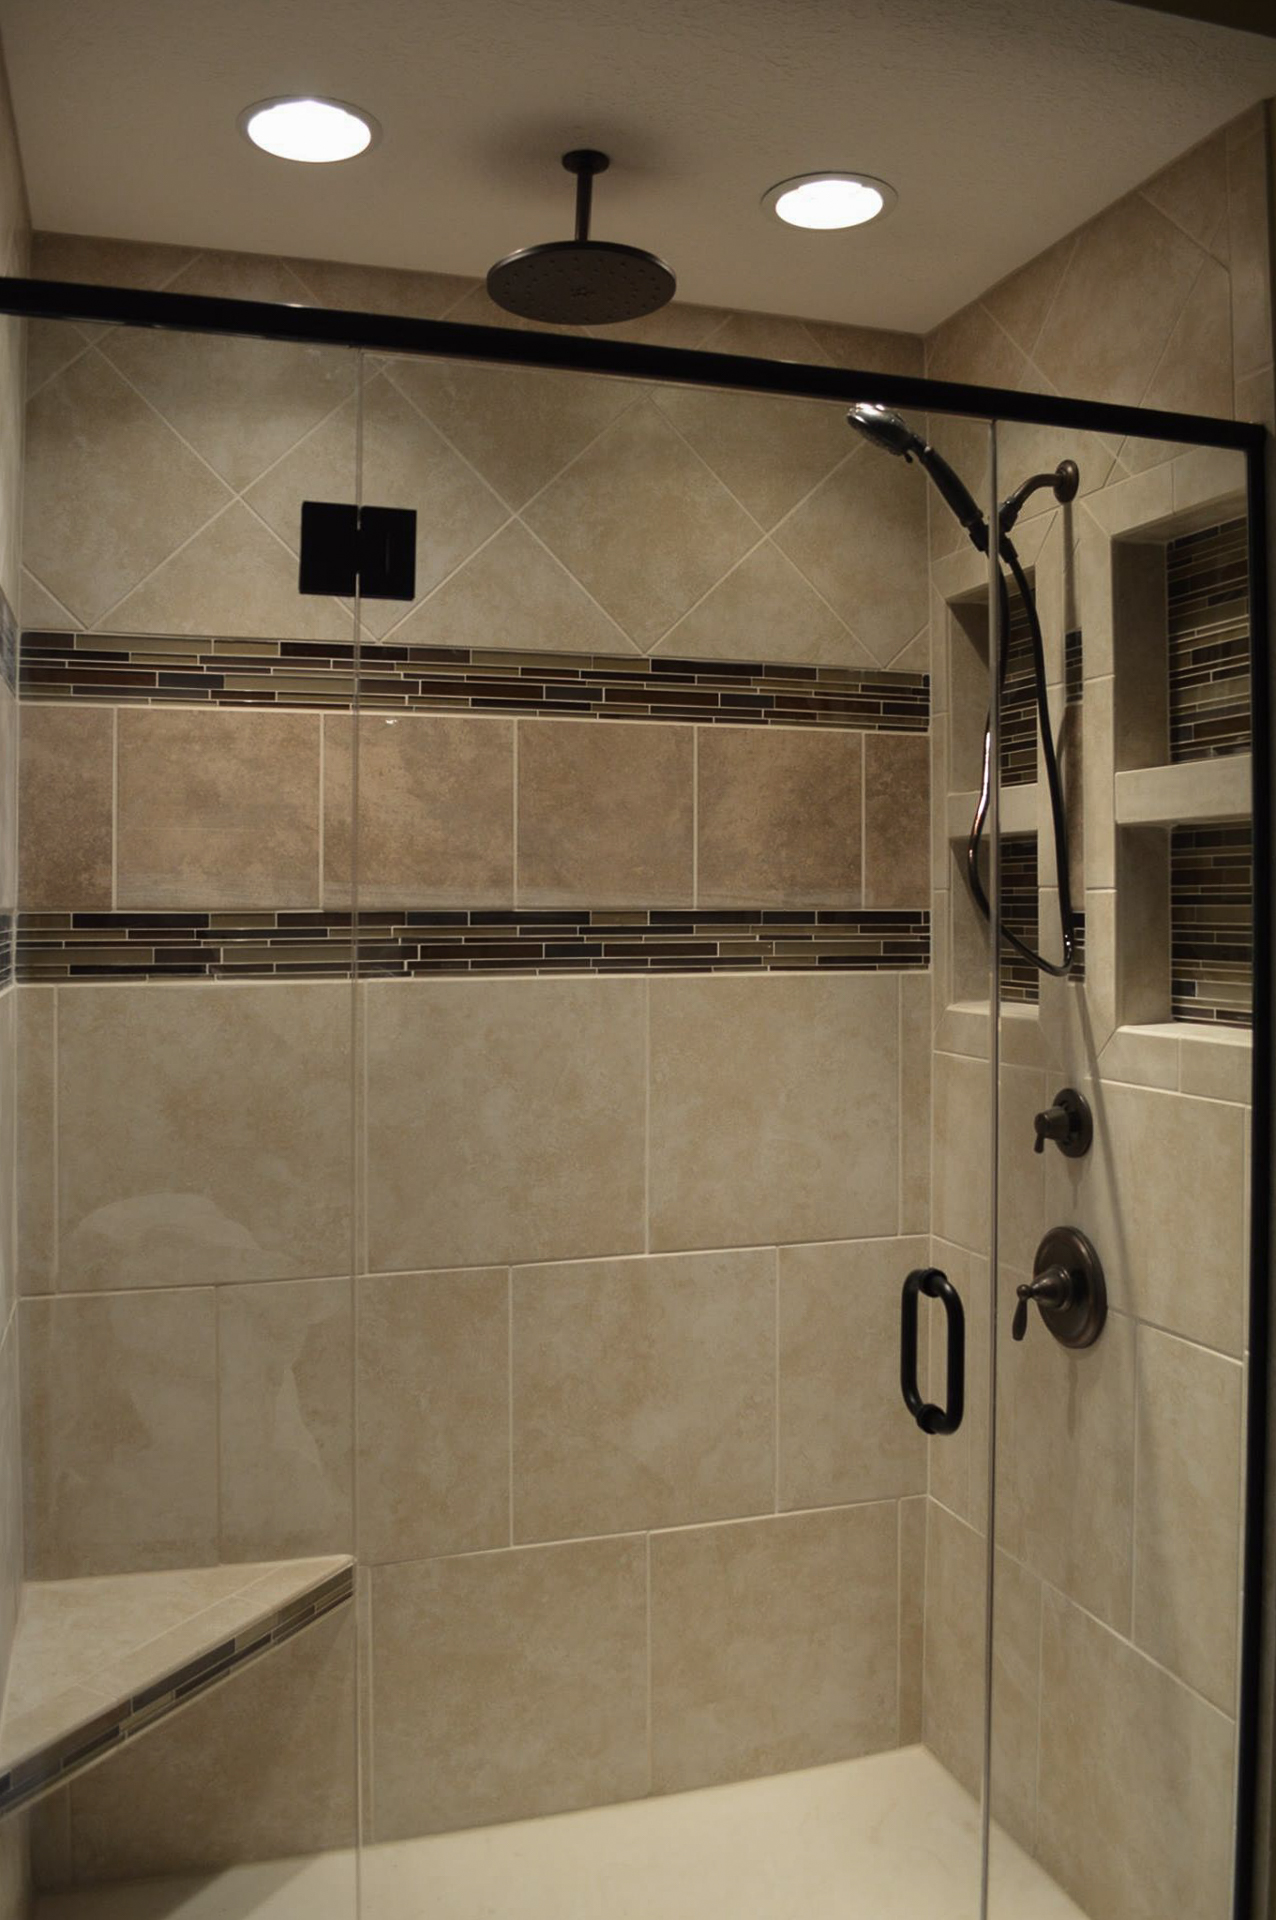 Ceramic tile shower with recessed boxes and seat with Brantford ORB fixture